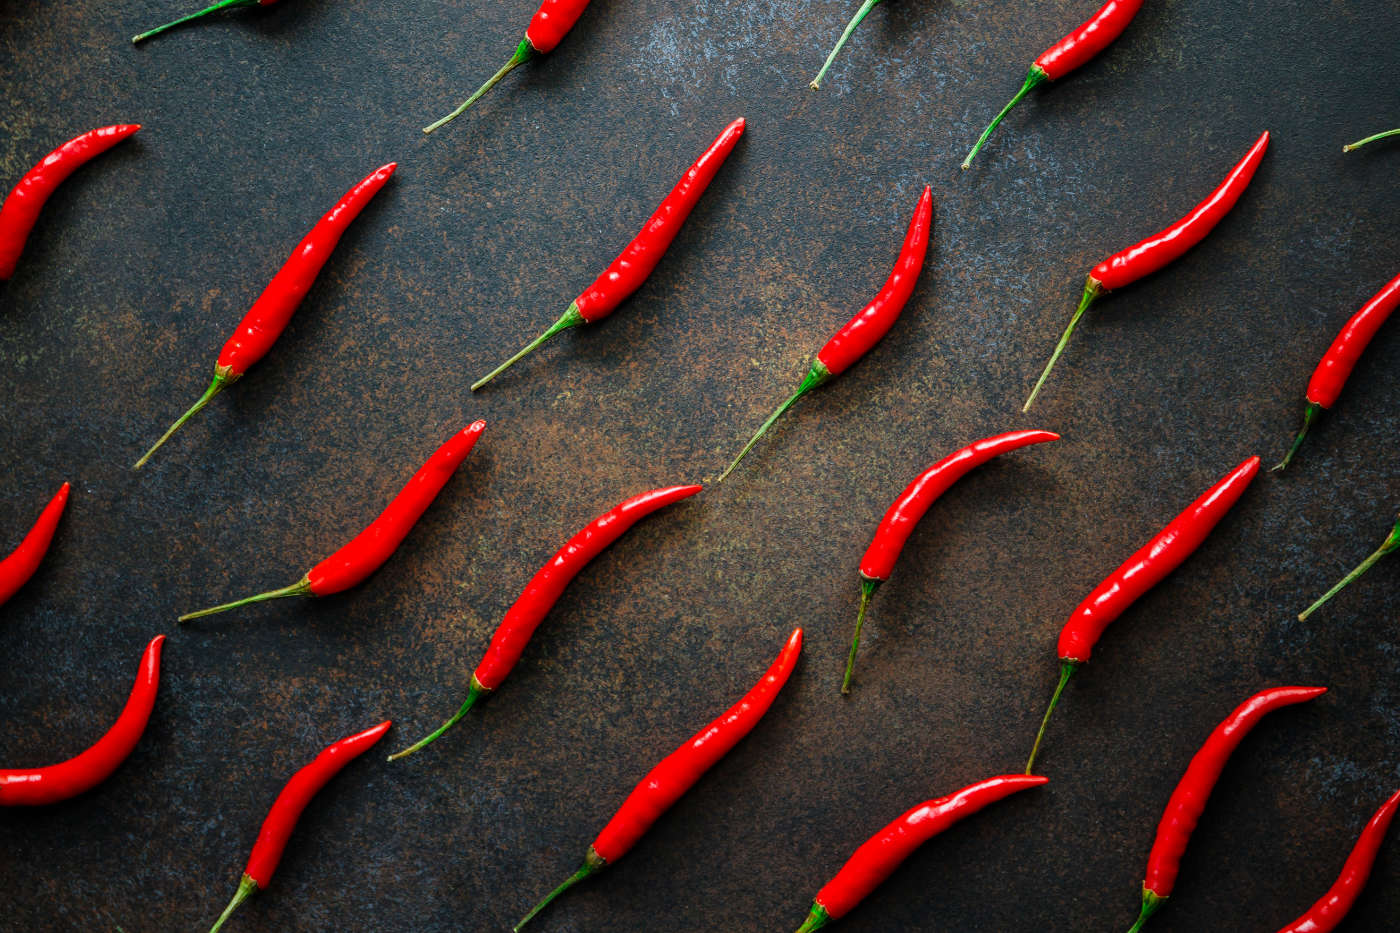 a-lot-of-chili-peppers-on-a-kitchen-table-top-view-MC2X8WH.jpg